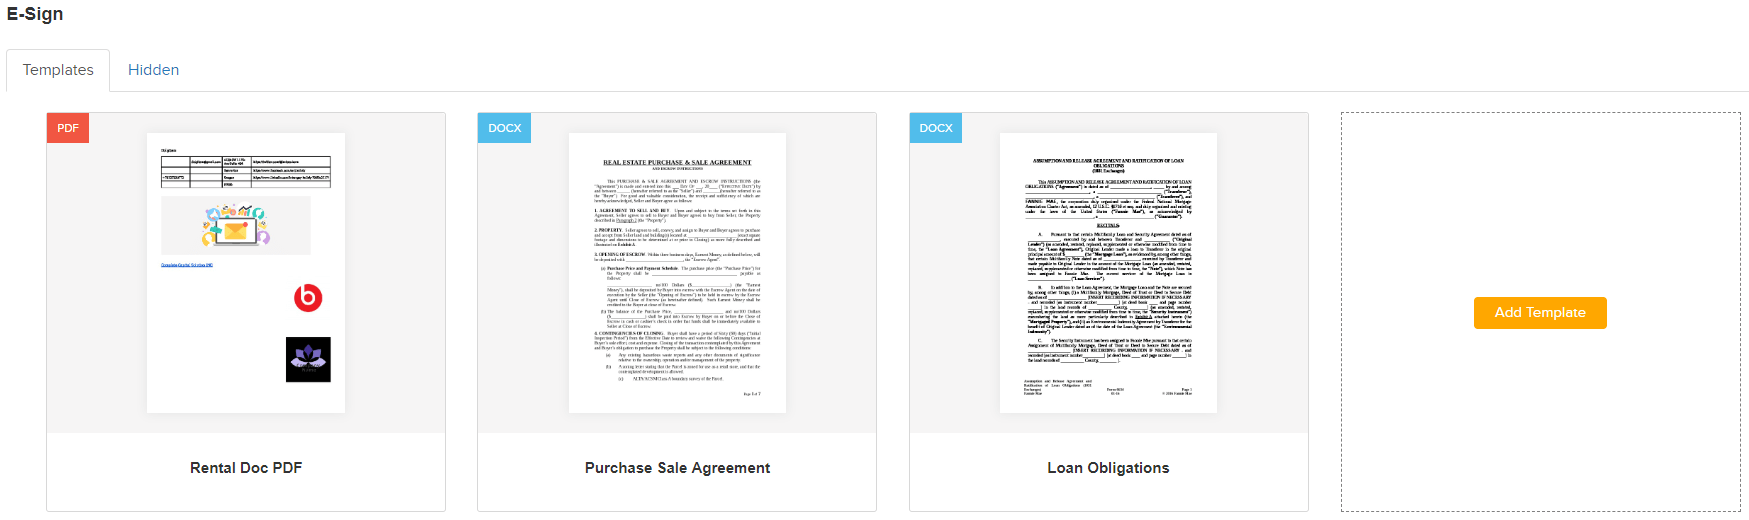 Add mortgage docs for e-sign